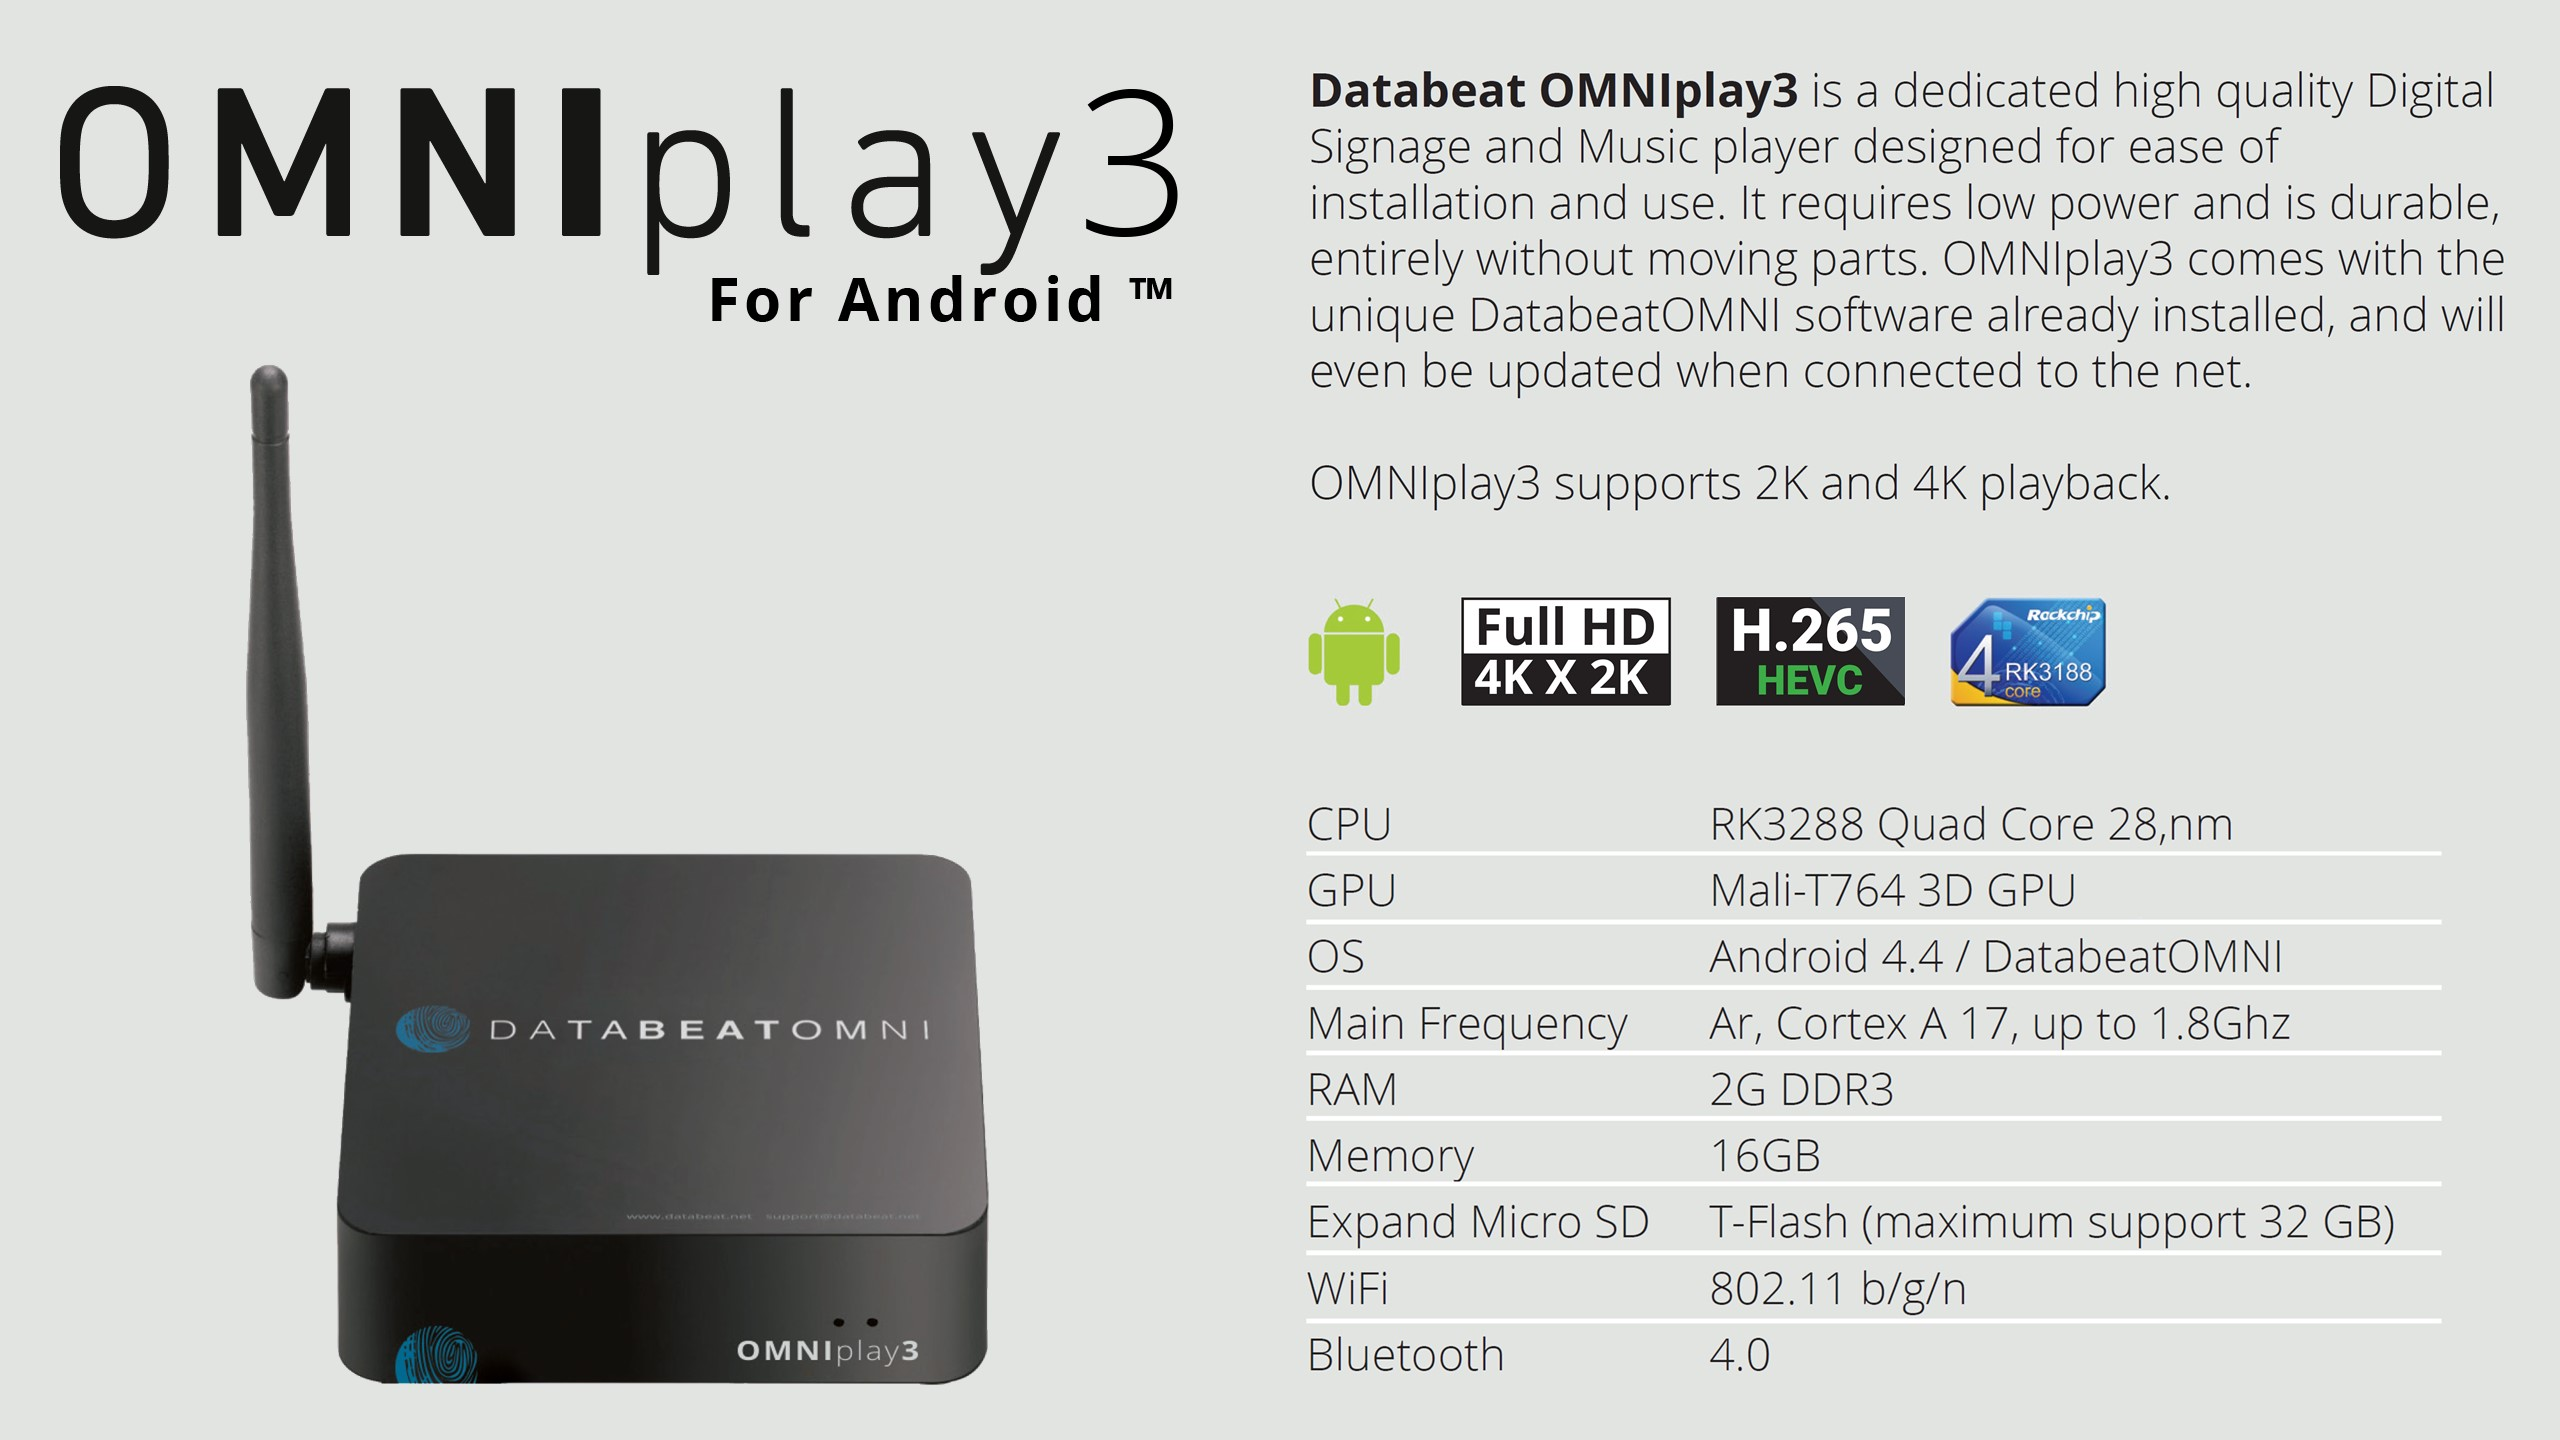 Databeat OMNIplay3 Key features Specifications Infomation